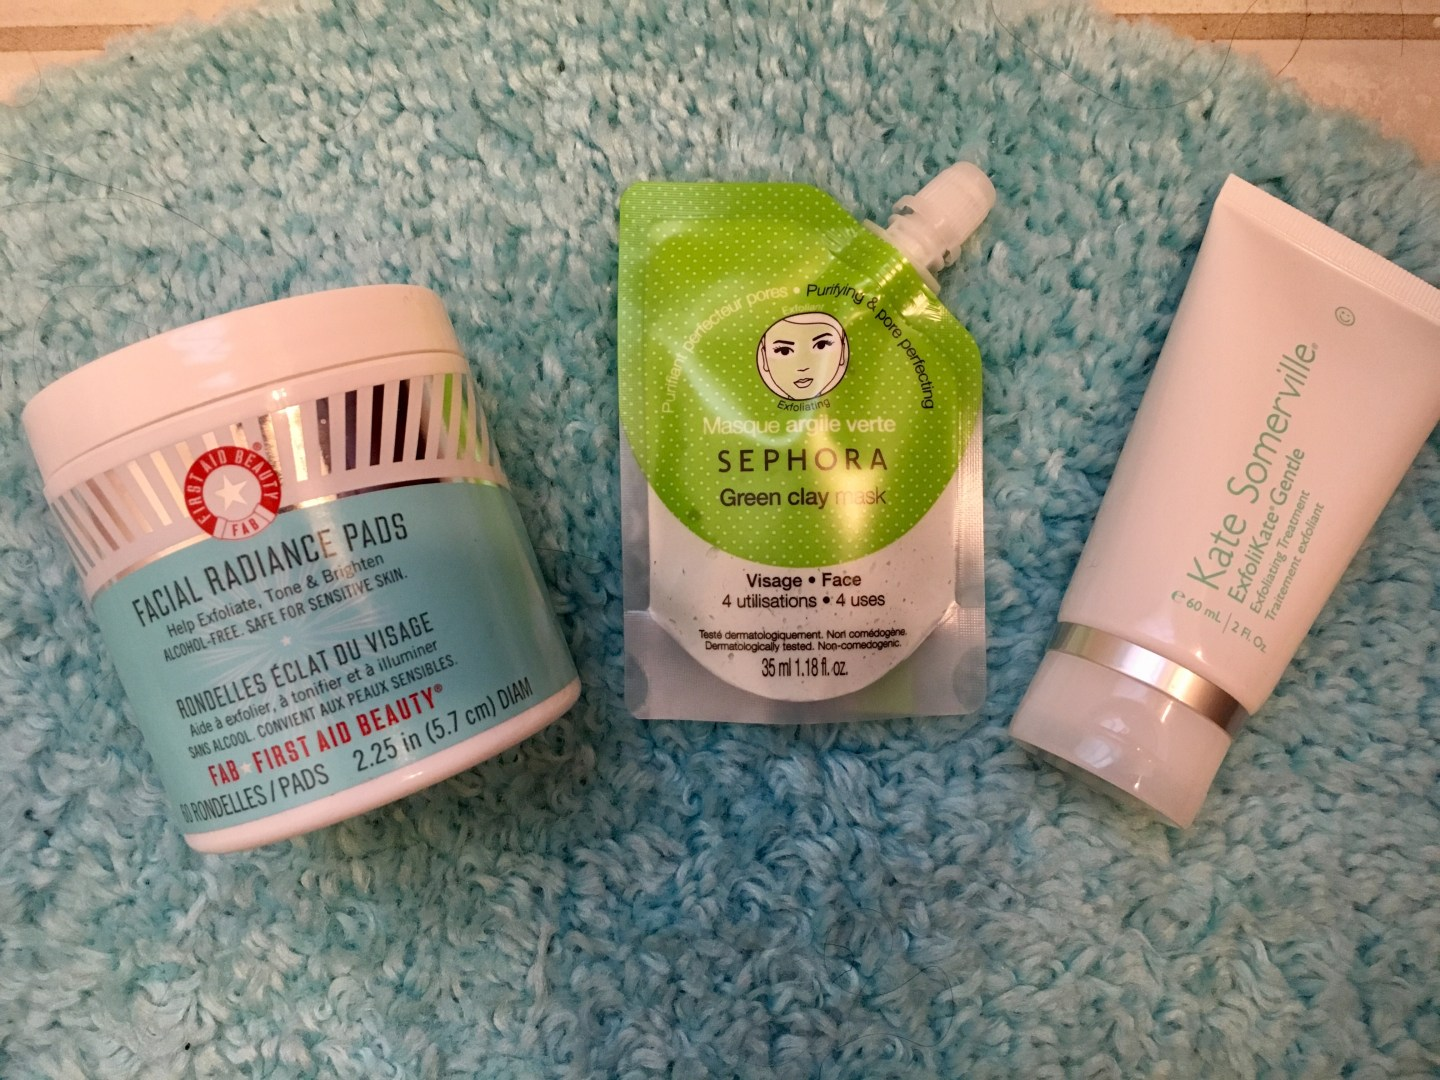 Current Skincare Products Review!